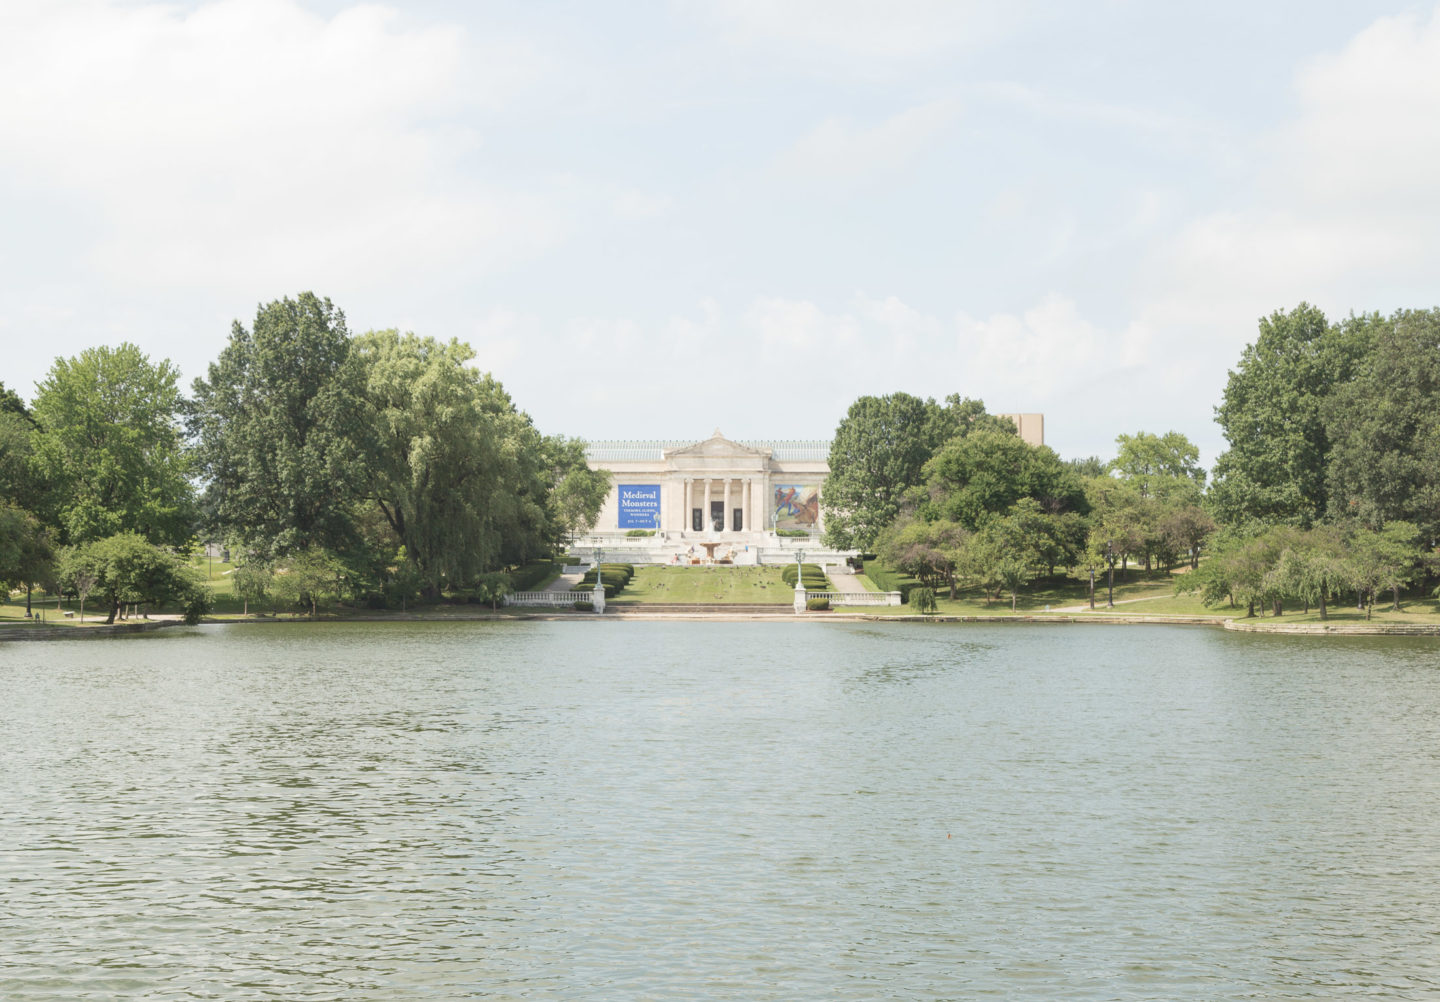 Cleveland Museum of Art in Wade Park, Ohio